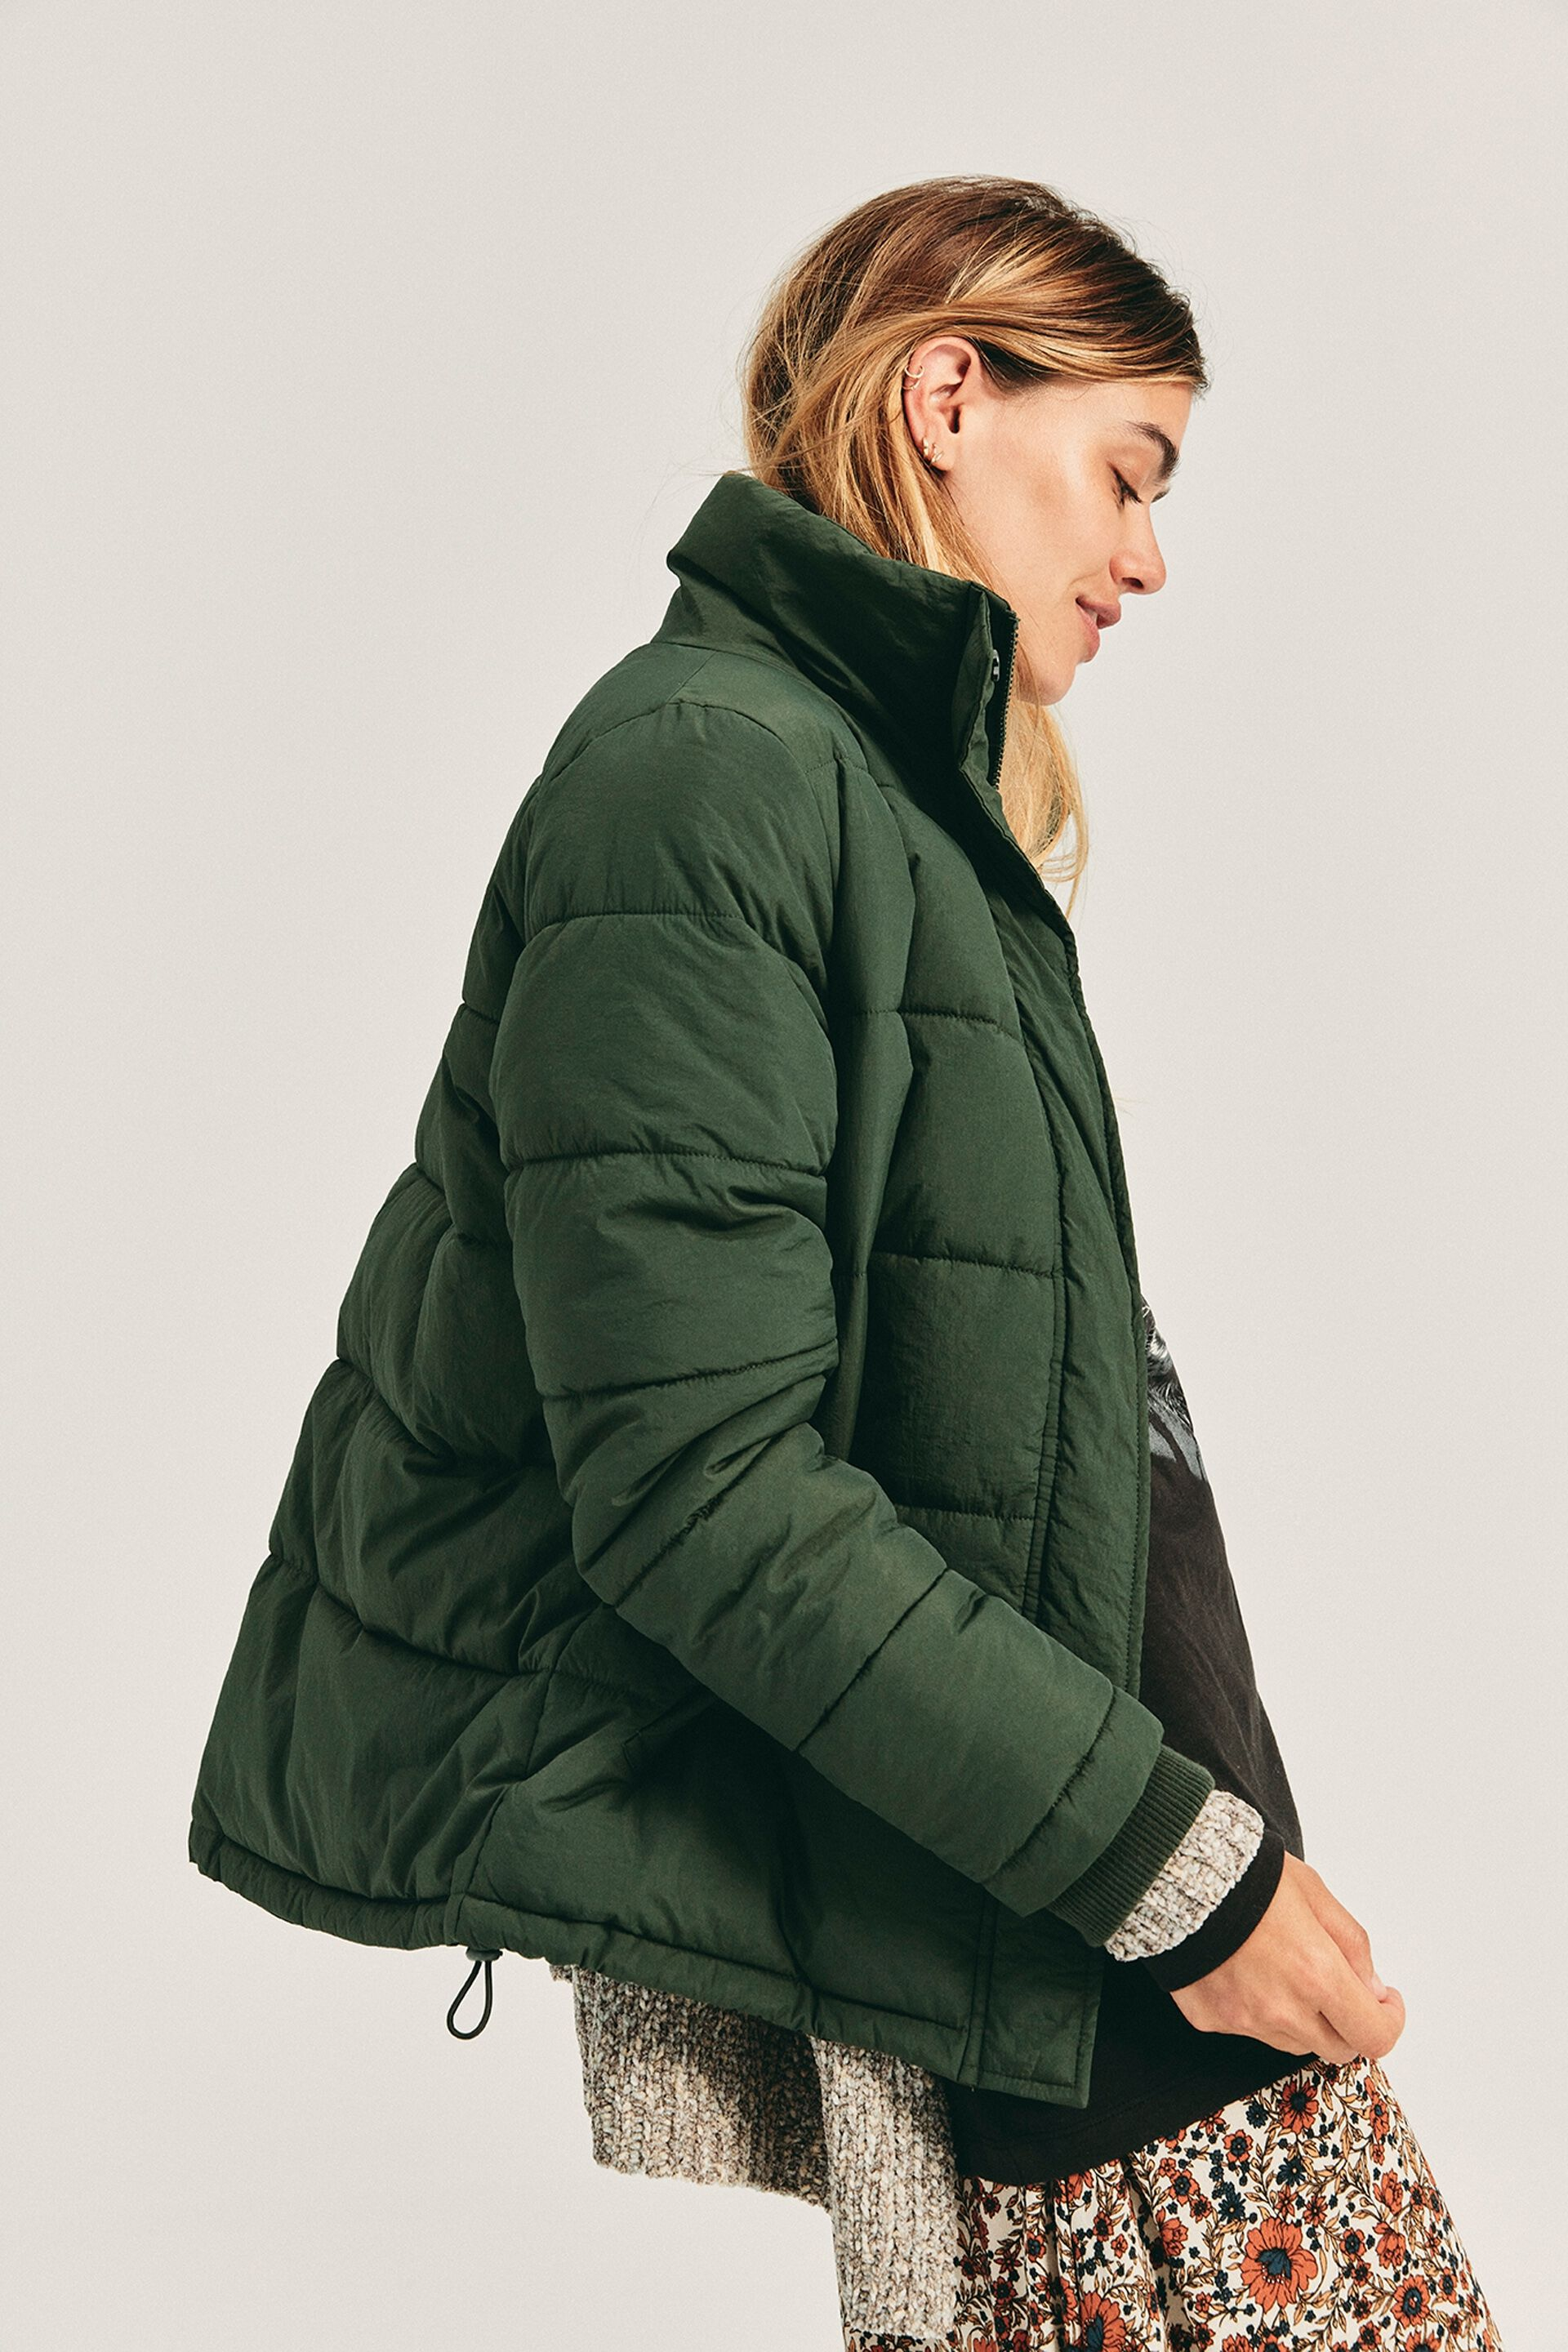 30 Best Coats, Jackets & Vests images